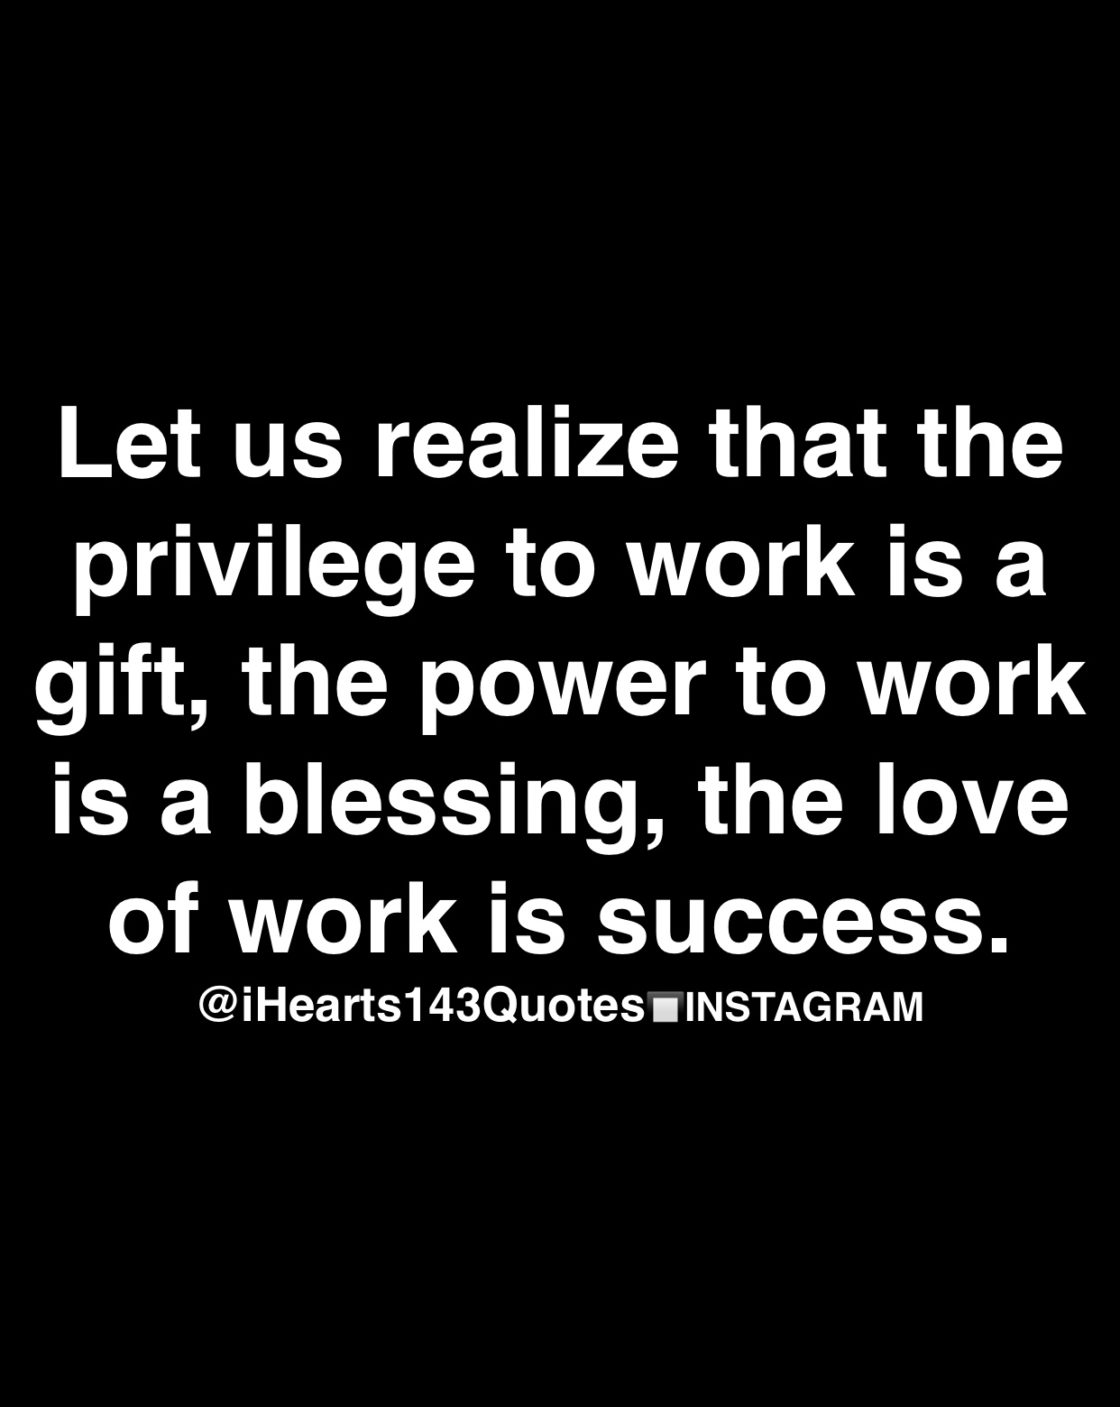 Daily Motivational Quotes For Work Wisdom Quotes  Page 3  Ihearts143Quotes